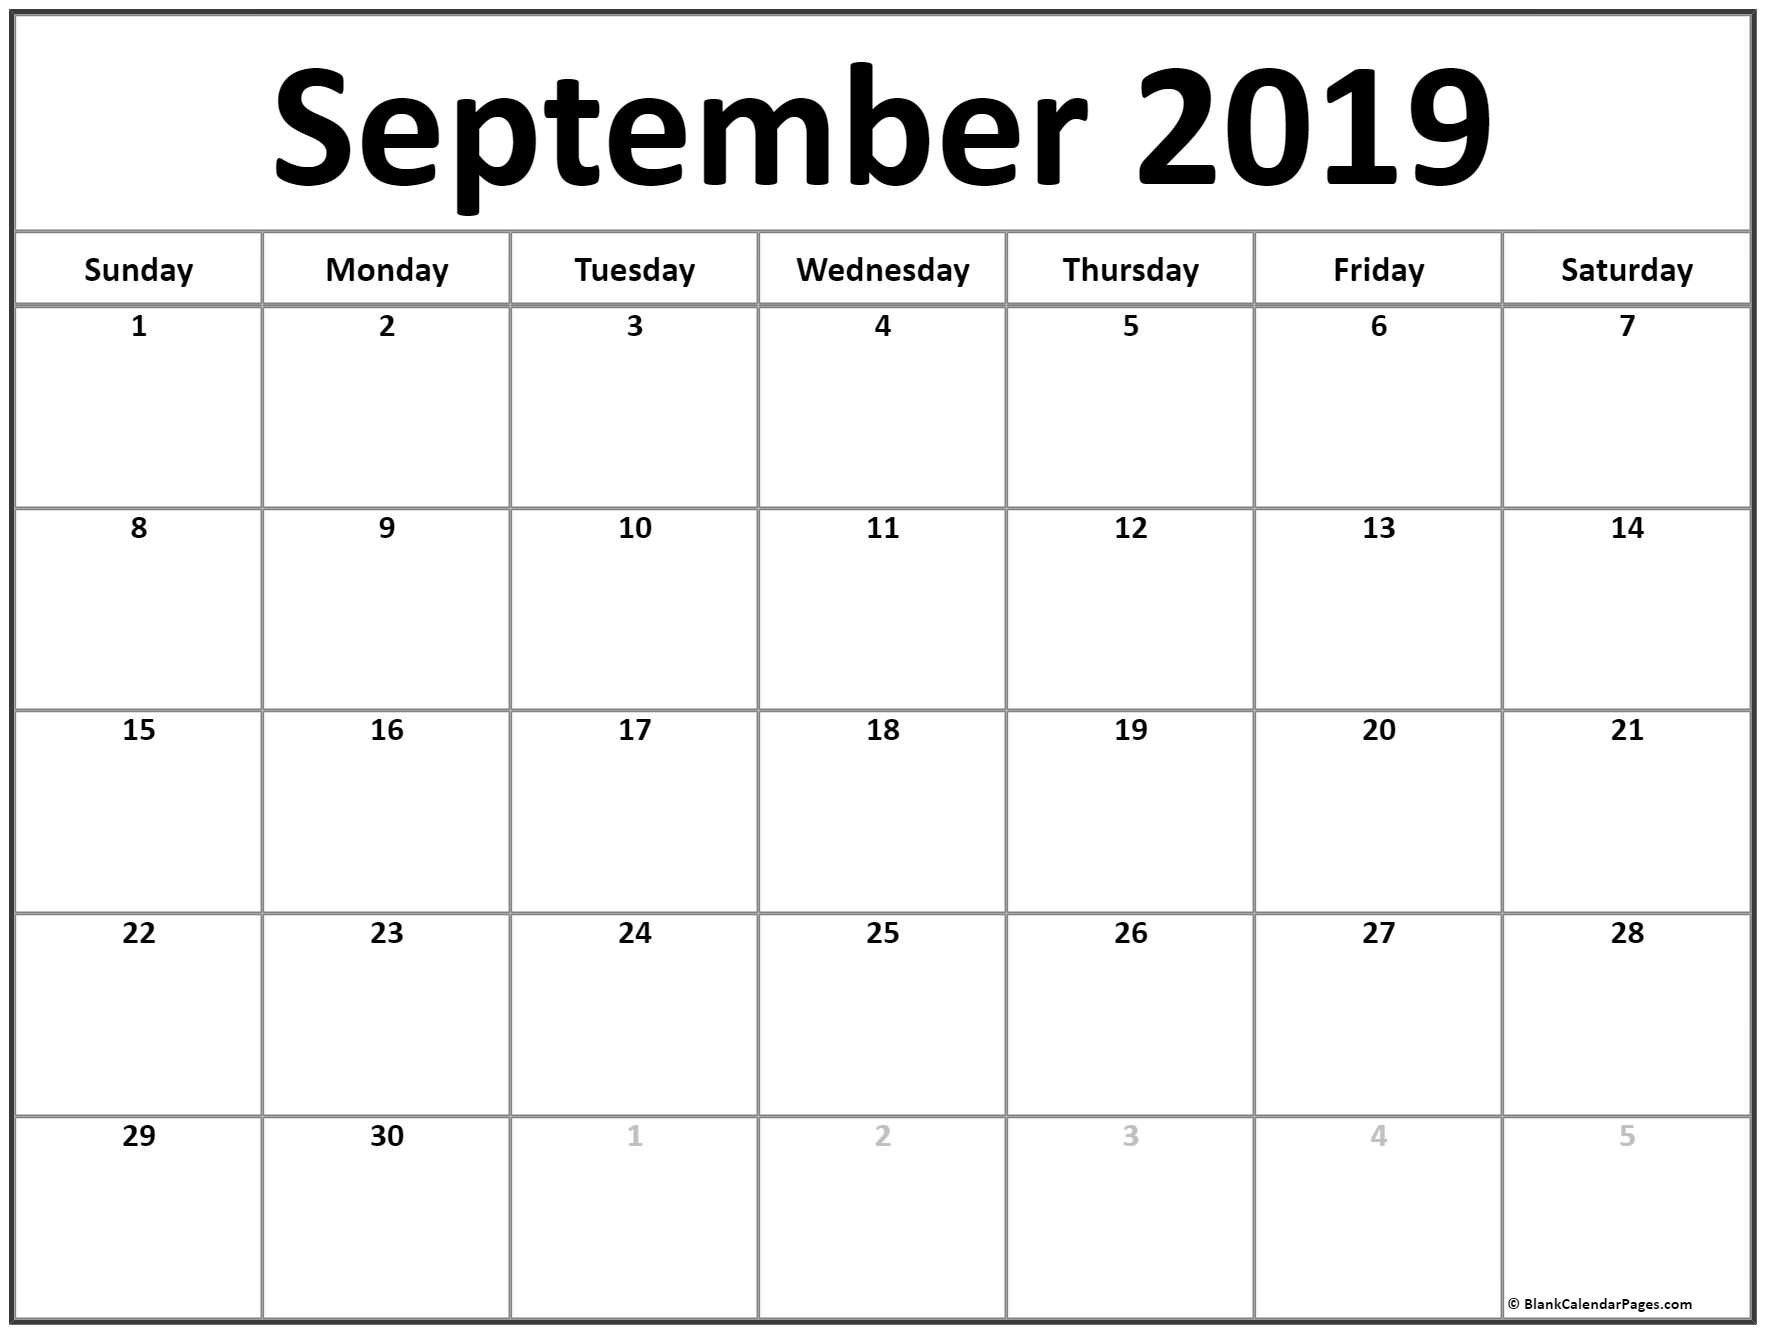 September 2019 Calendar | 56+ Templates Of 2019 Printable Calendars Calendar Of 2019 September